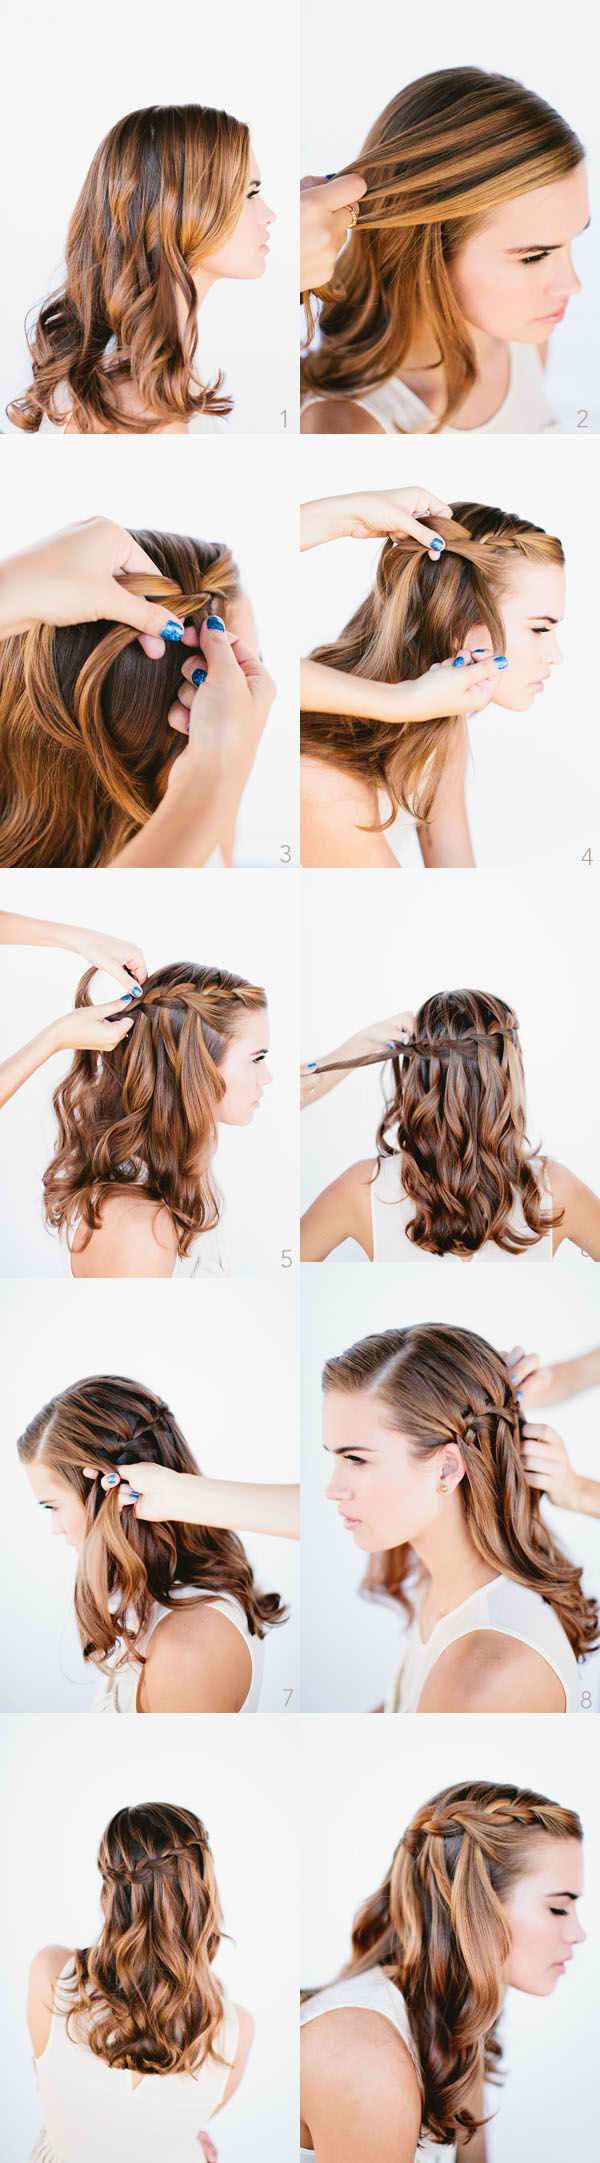 Easy Hairstyles You Can Fun Things To Do To Yourself